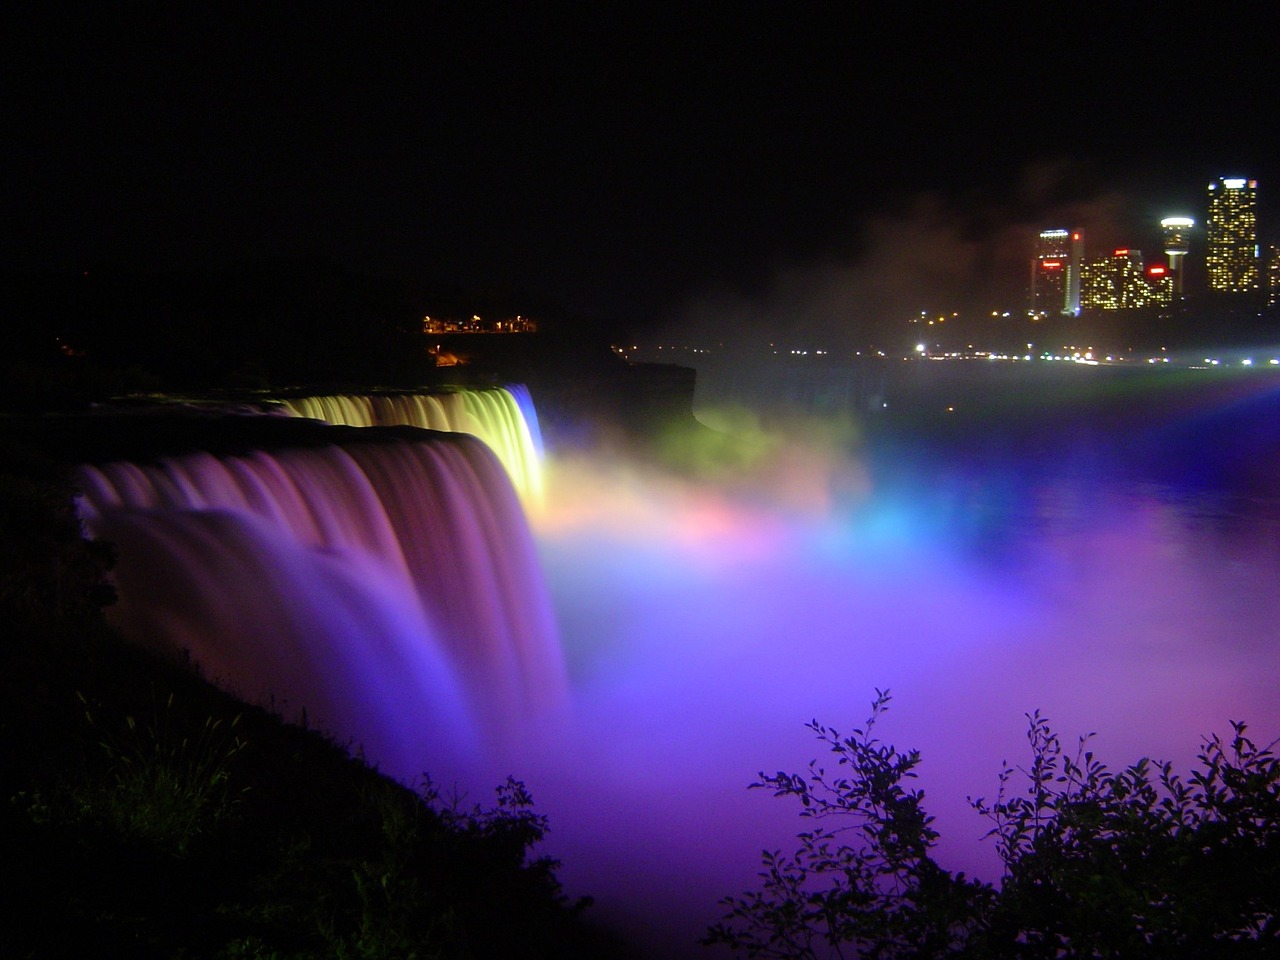 Top 5 Baby Boomer Travel Destinations niagara falls